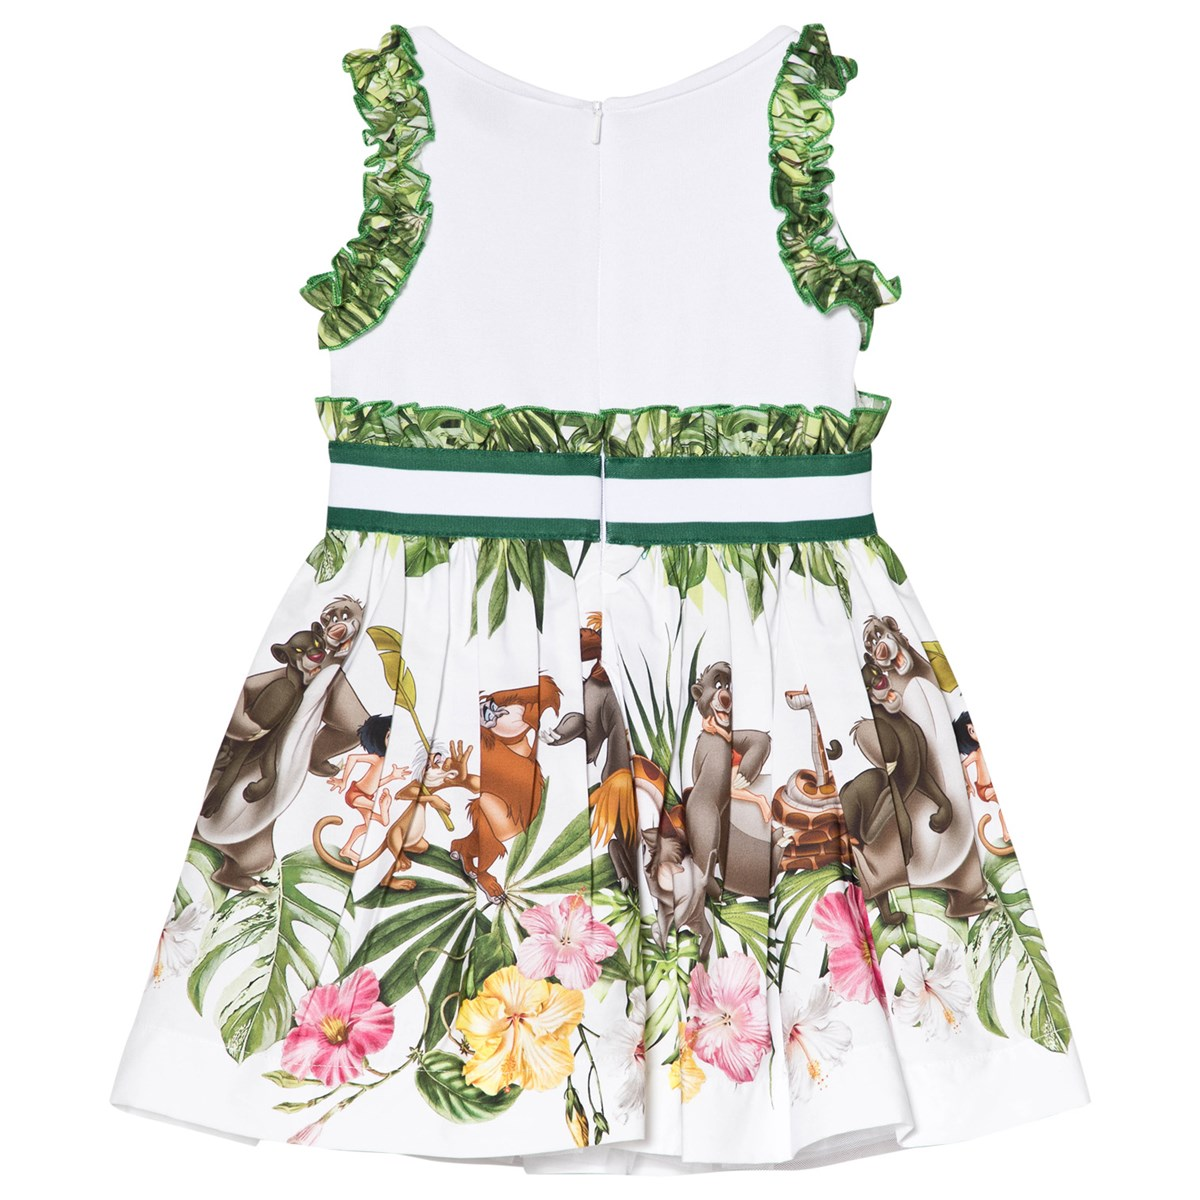 799ae24e5 Monnalisa White and Green Jungle Book Print and Sequin Party Dress |  AlexandAlexa